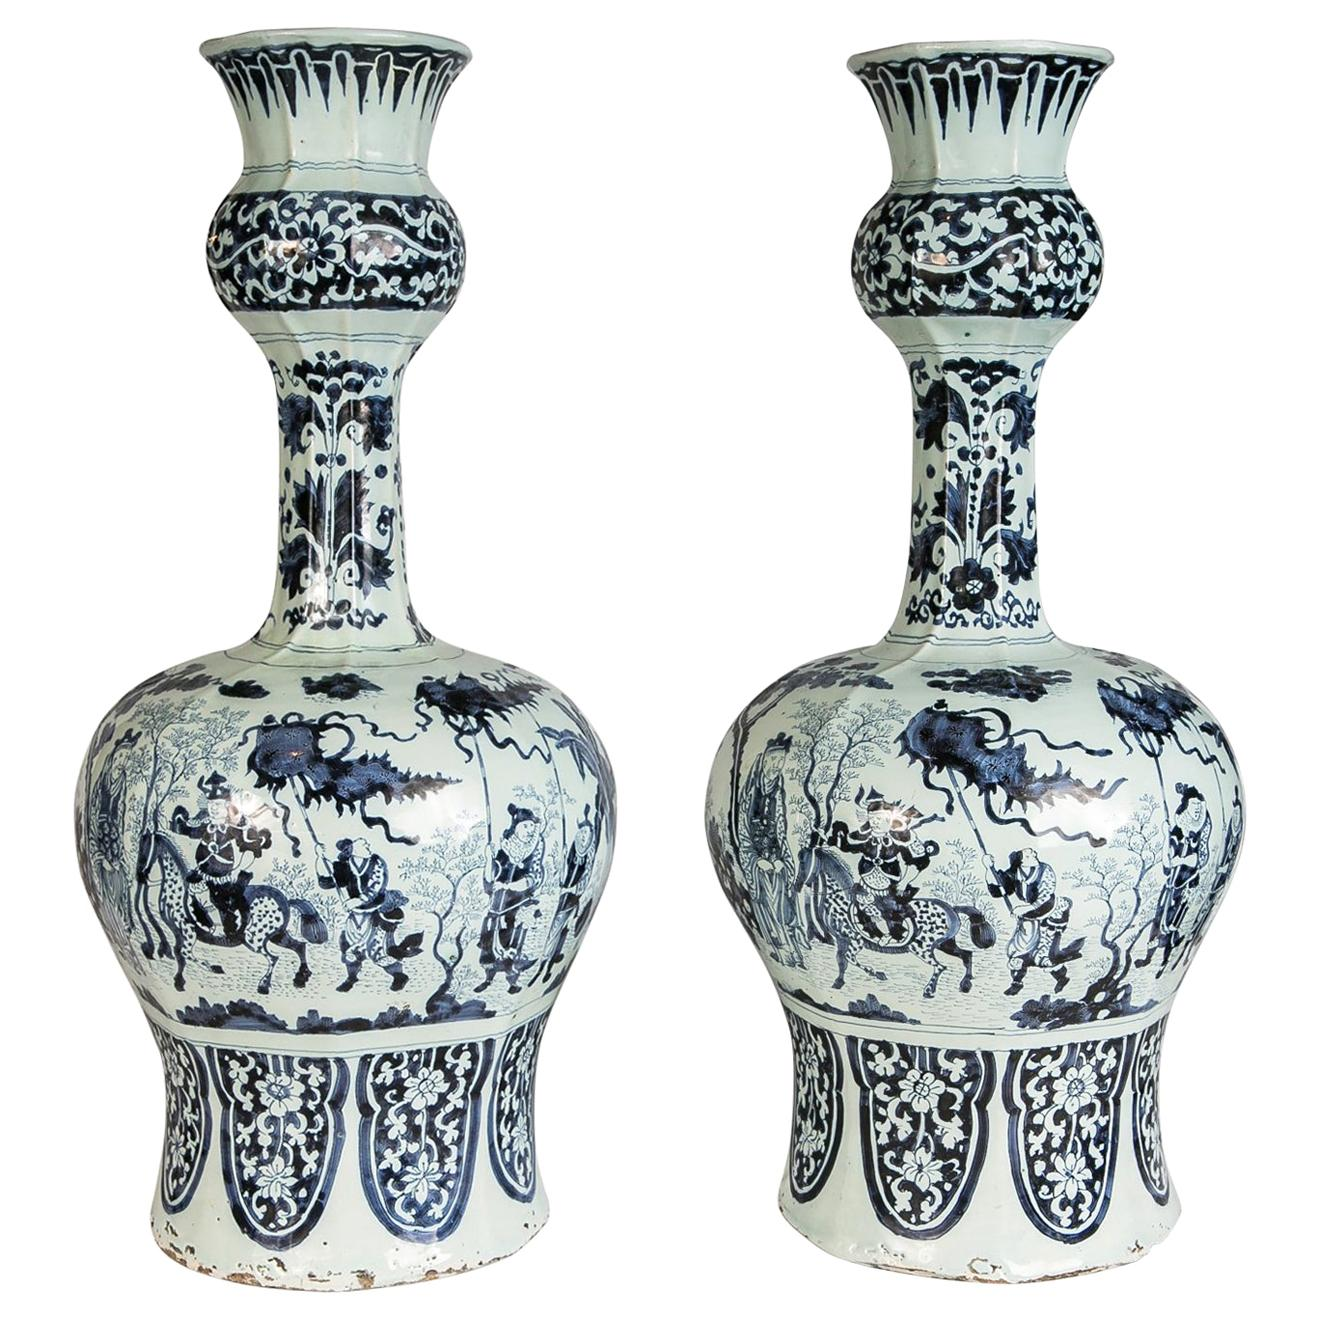 Large Pair of Antique Delft Blue and White Vases Made circa 1700-1720